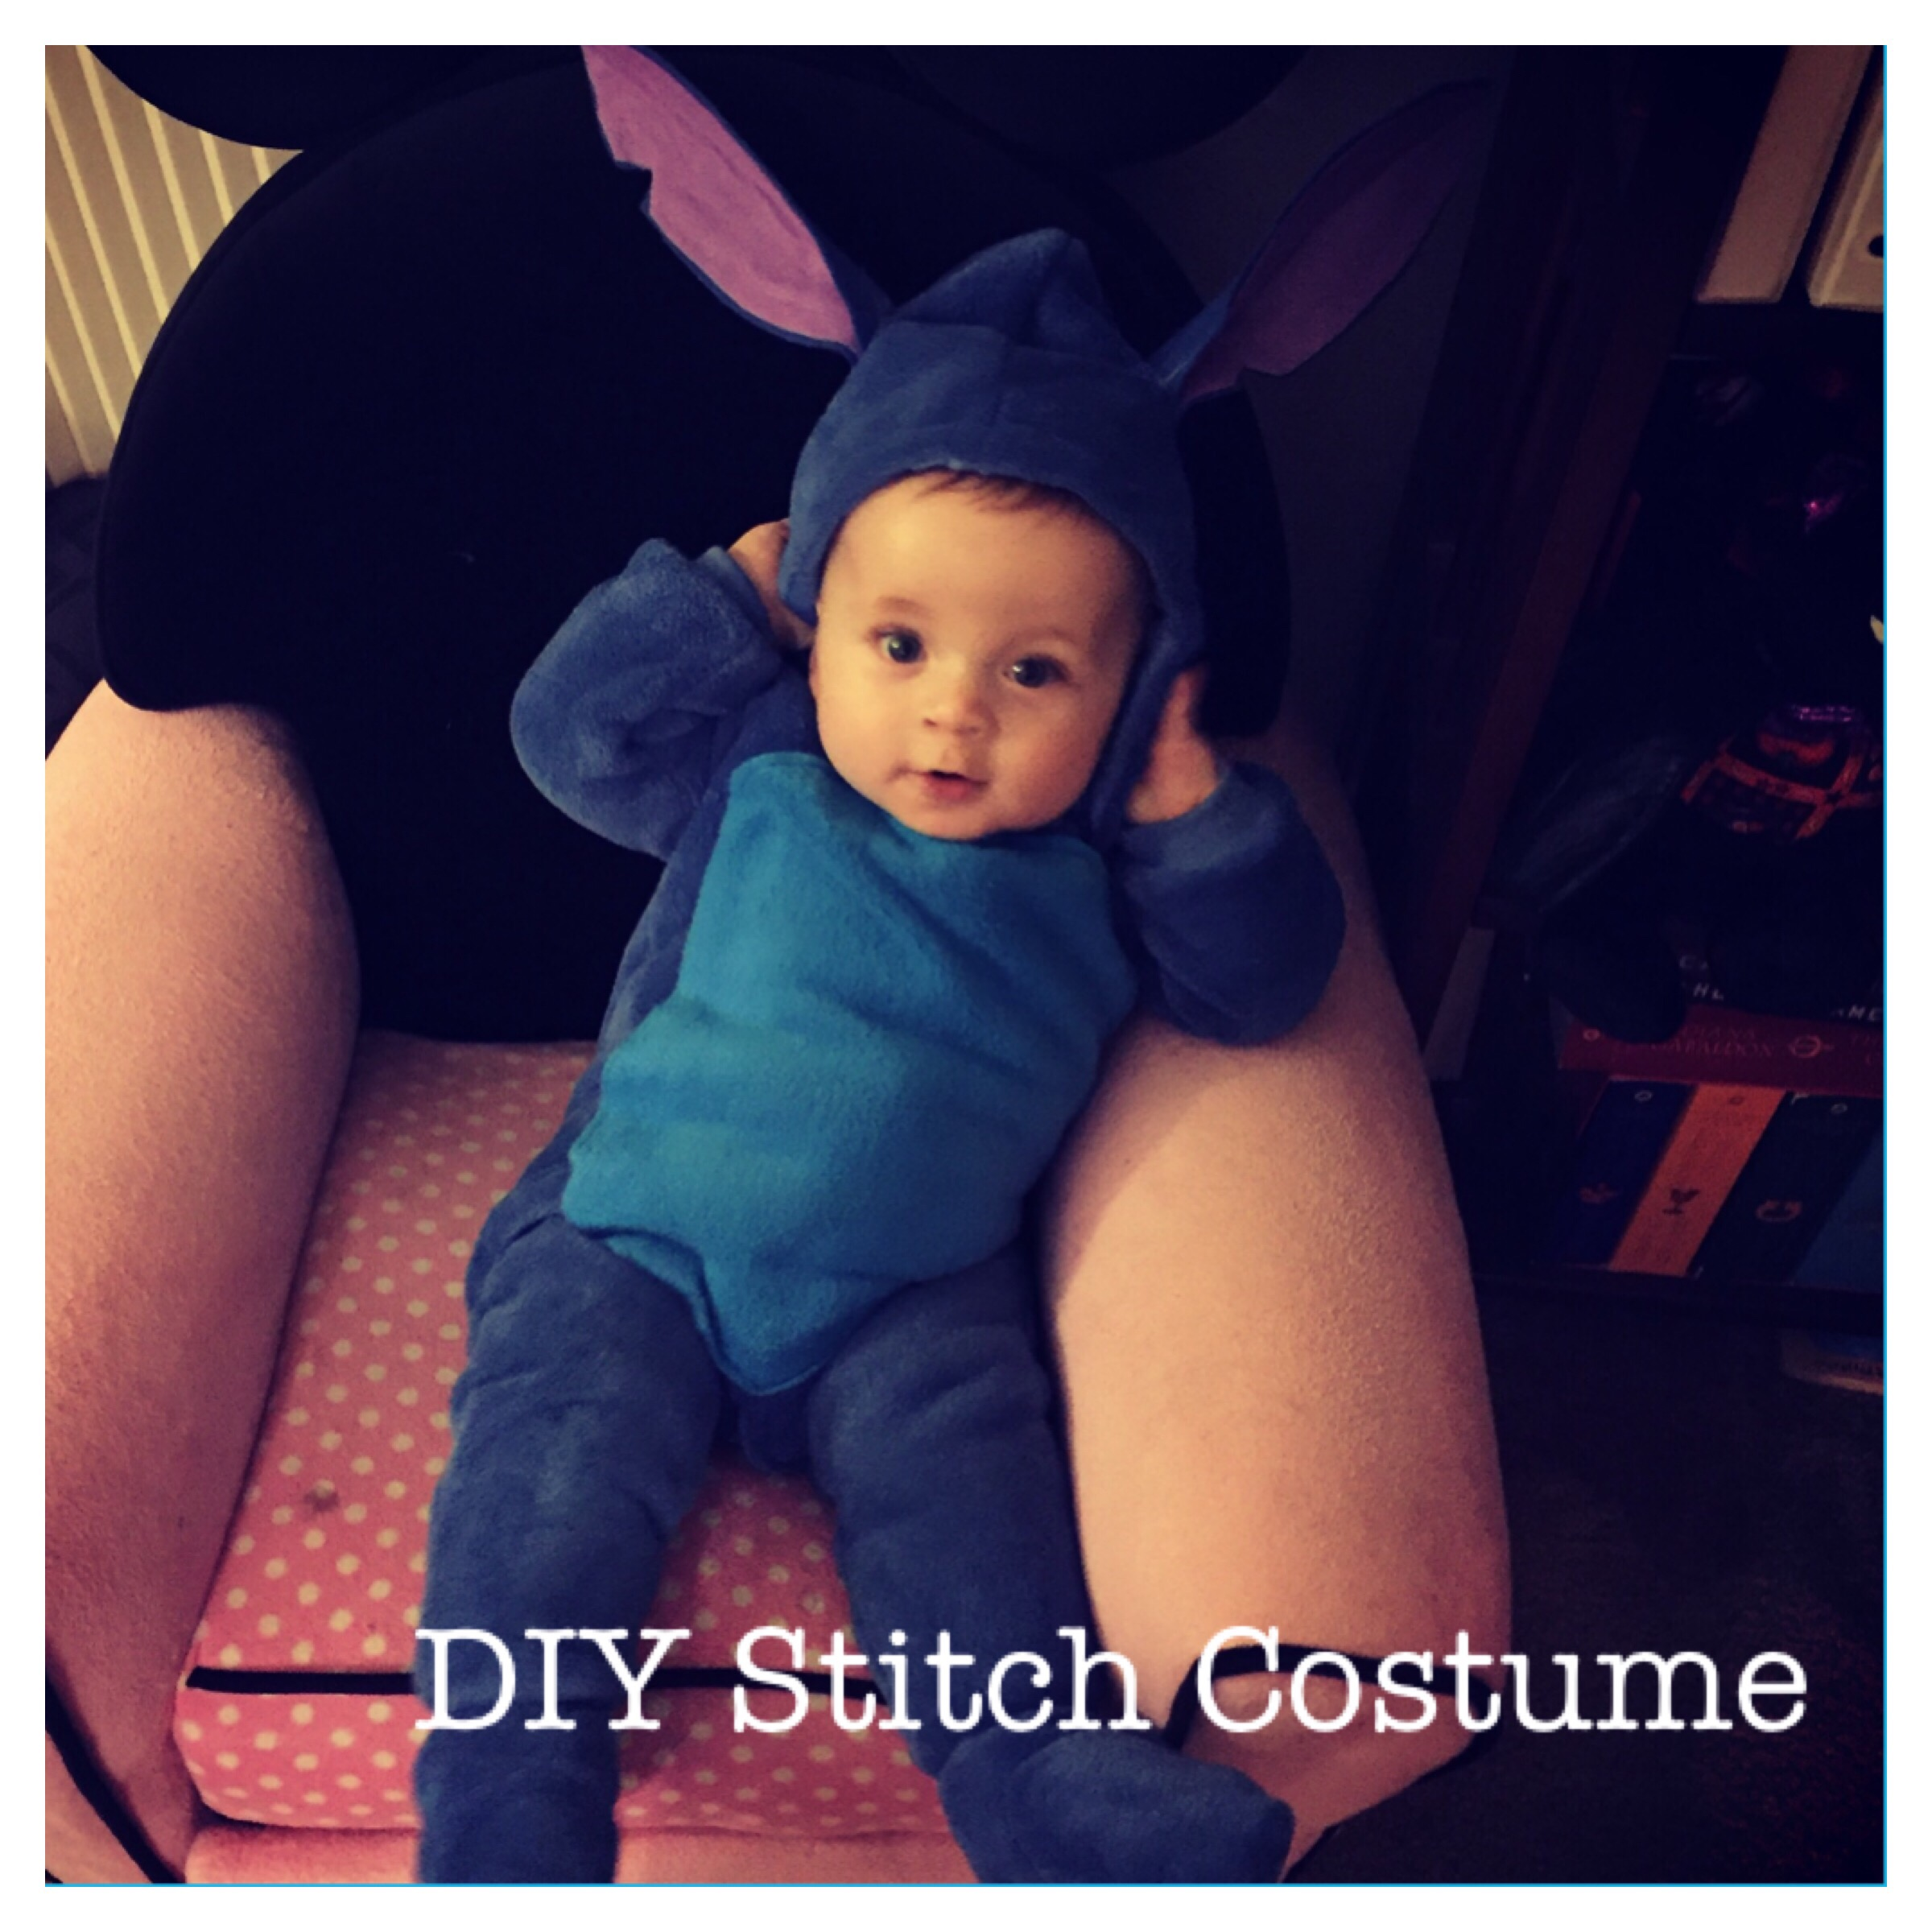 Diy Infant Stitch Costume In Less Than 1 Hour Rockin The Dots